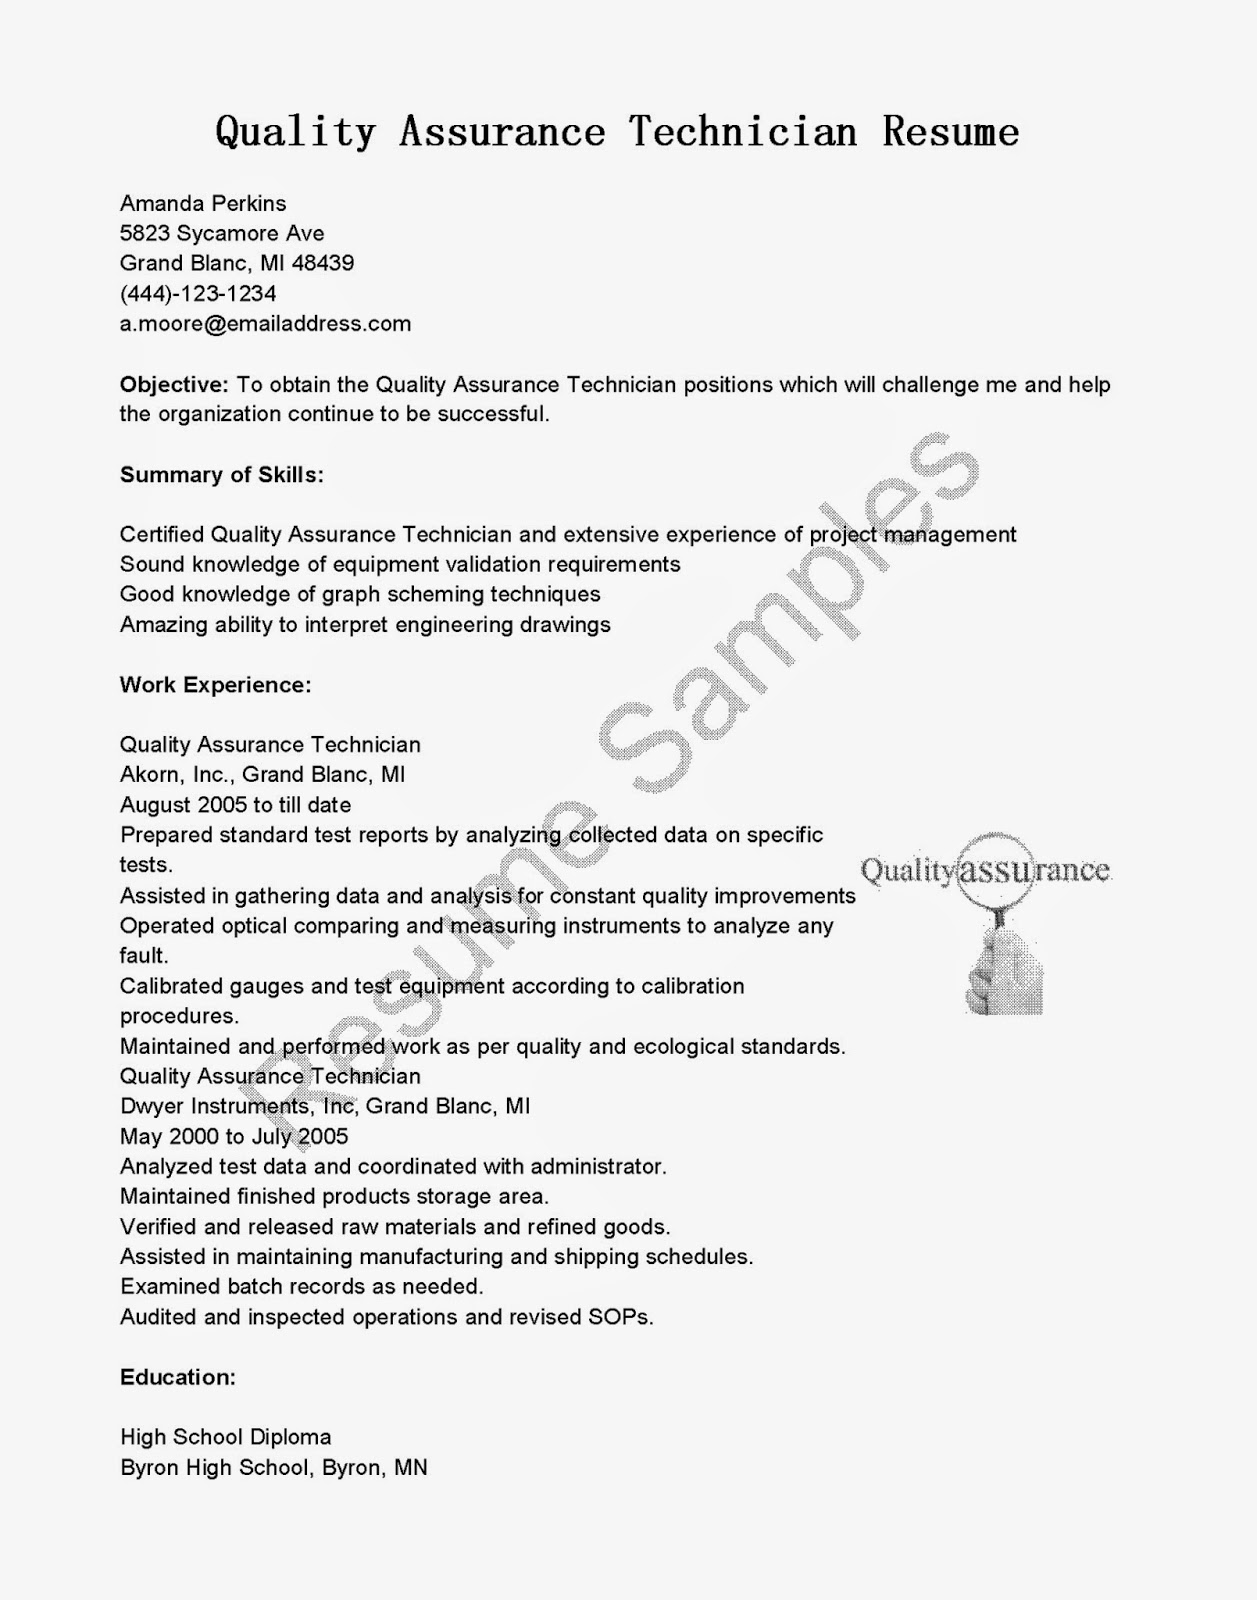 Wonderful 1 Page Resume Format Thick 1 Page Resumes Examples Rectangular 10 Best Resumes 10 Envelope Template Youthful 10 Label Template Soft100 Free Printable Resume Builder Quality Assurance Resume Example